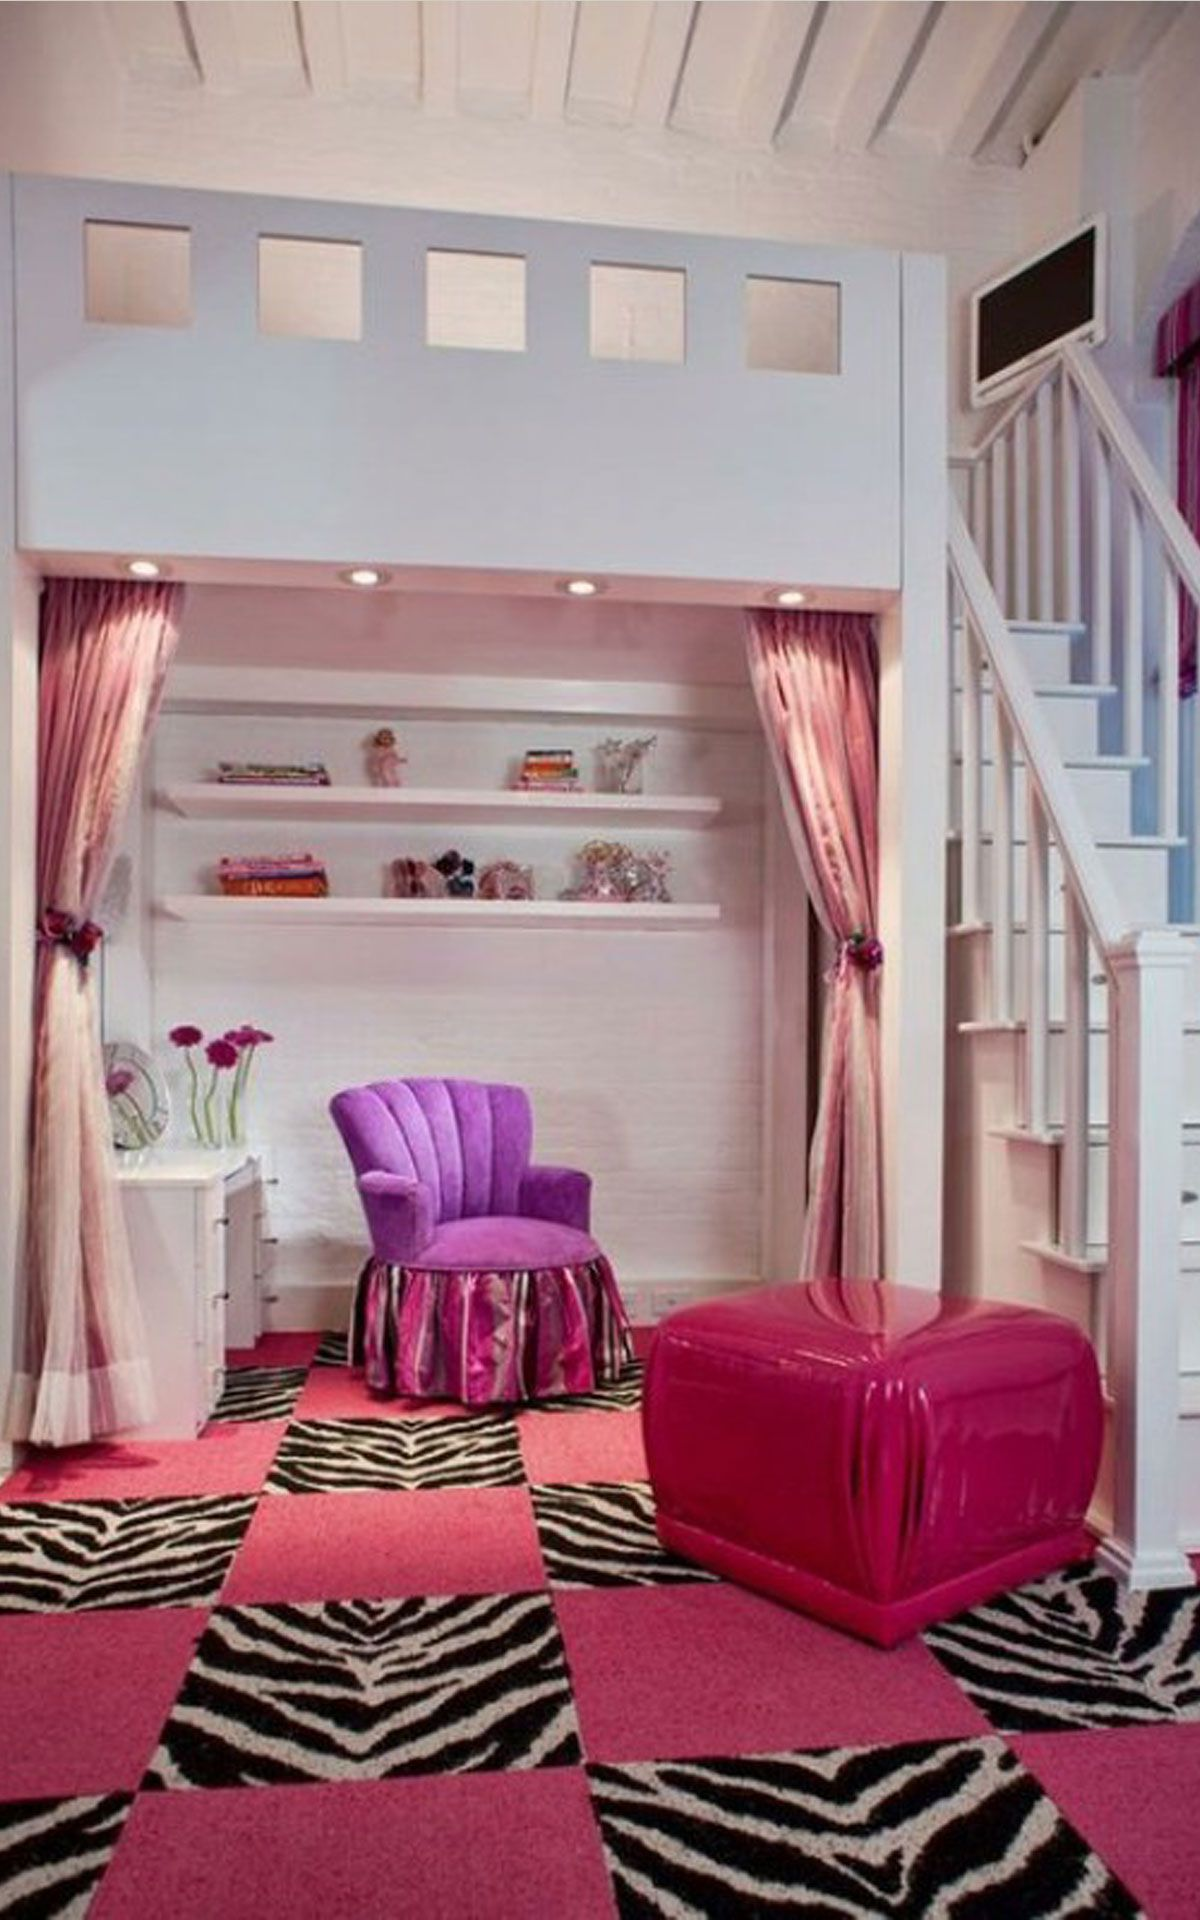 Room Design Ideas For Teenage Girl teens room teenage bedroom ideas simple house design ideas teen girl room for brilliant teens 1000 Images About Little Girls Room On Pinterest Jenny Lind Bed Little Girl Rooms And Beds